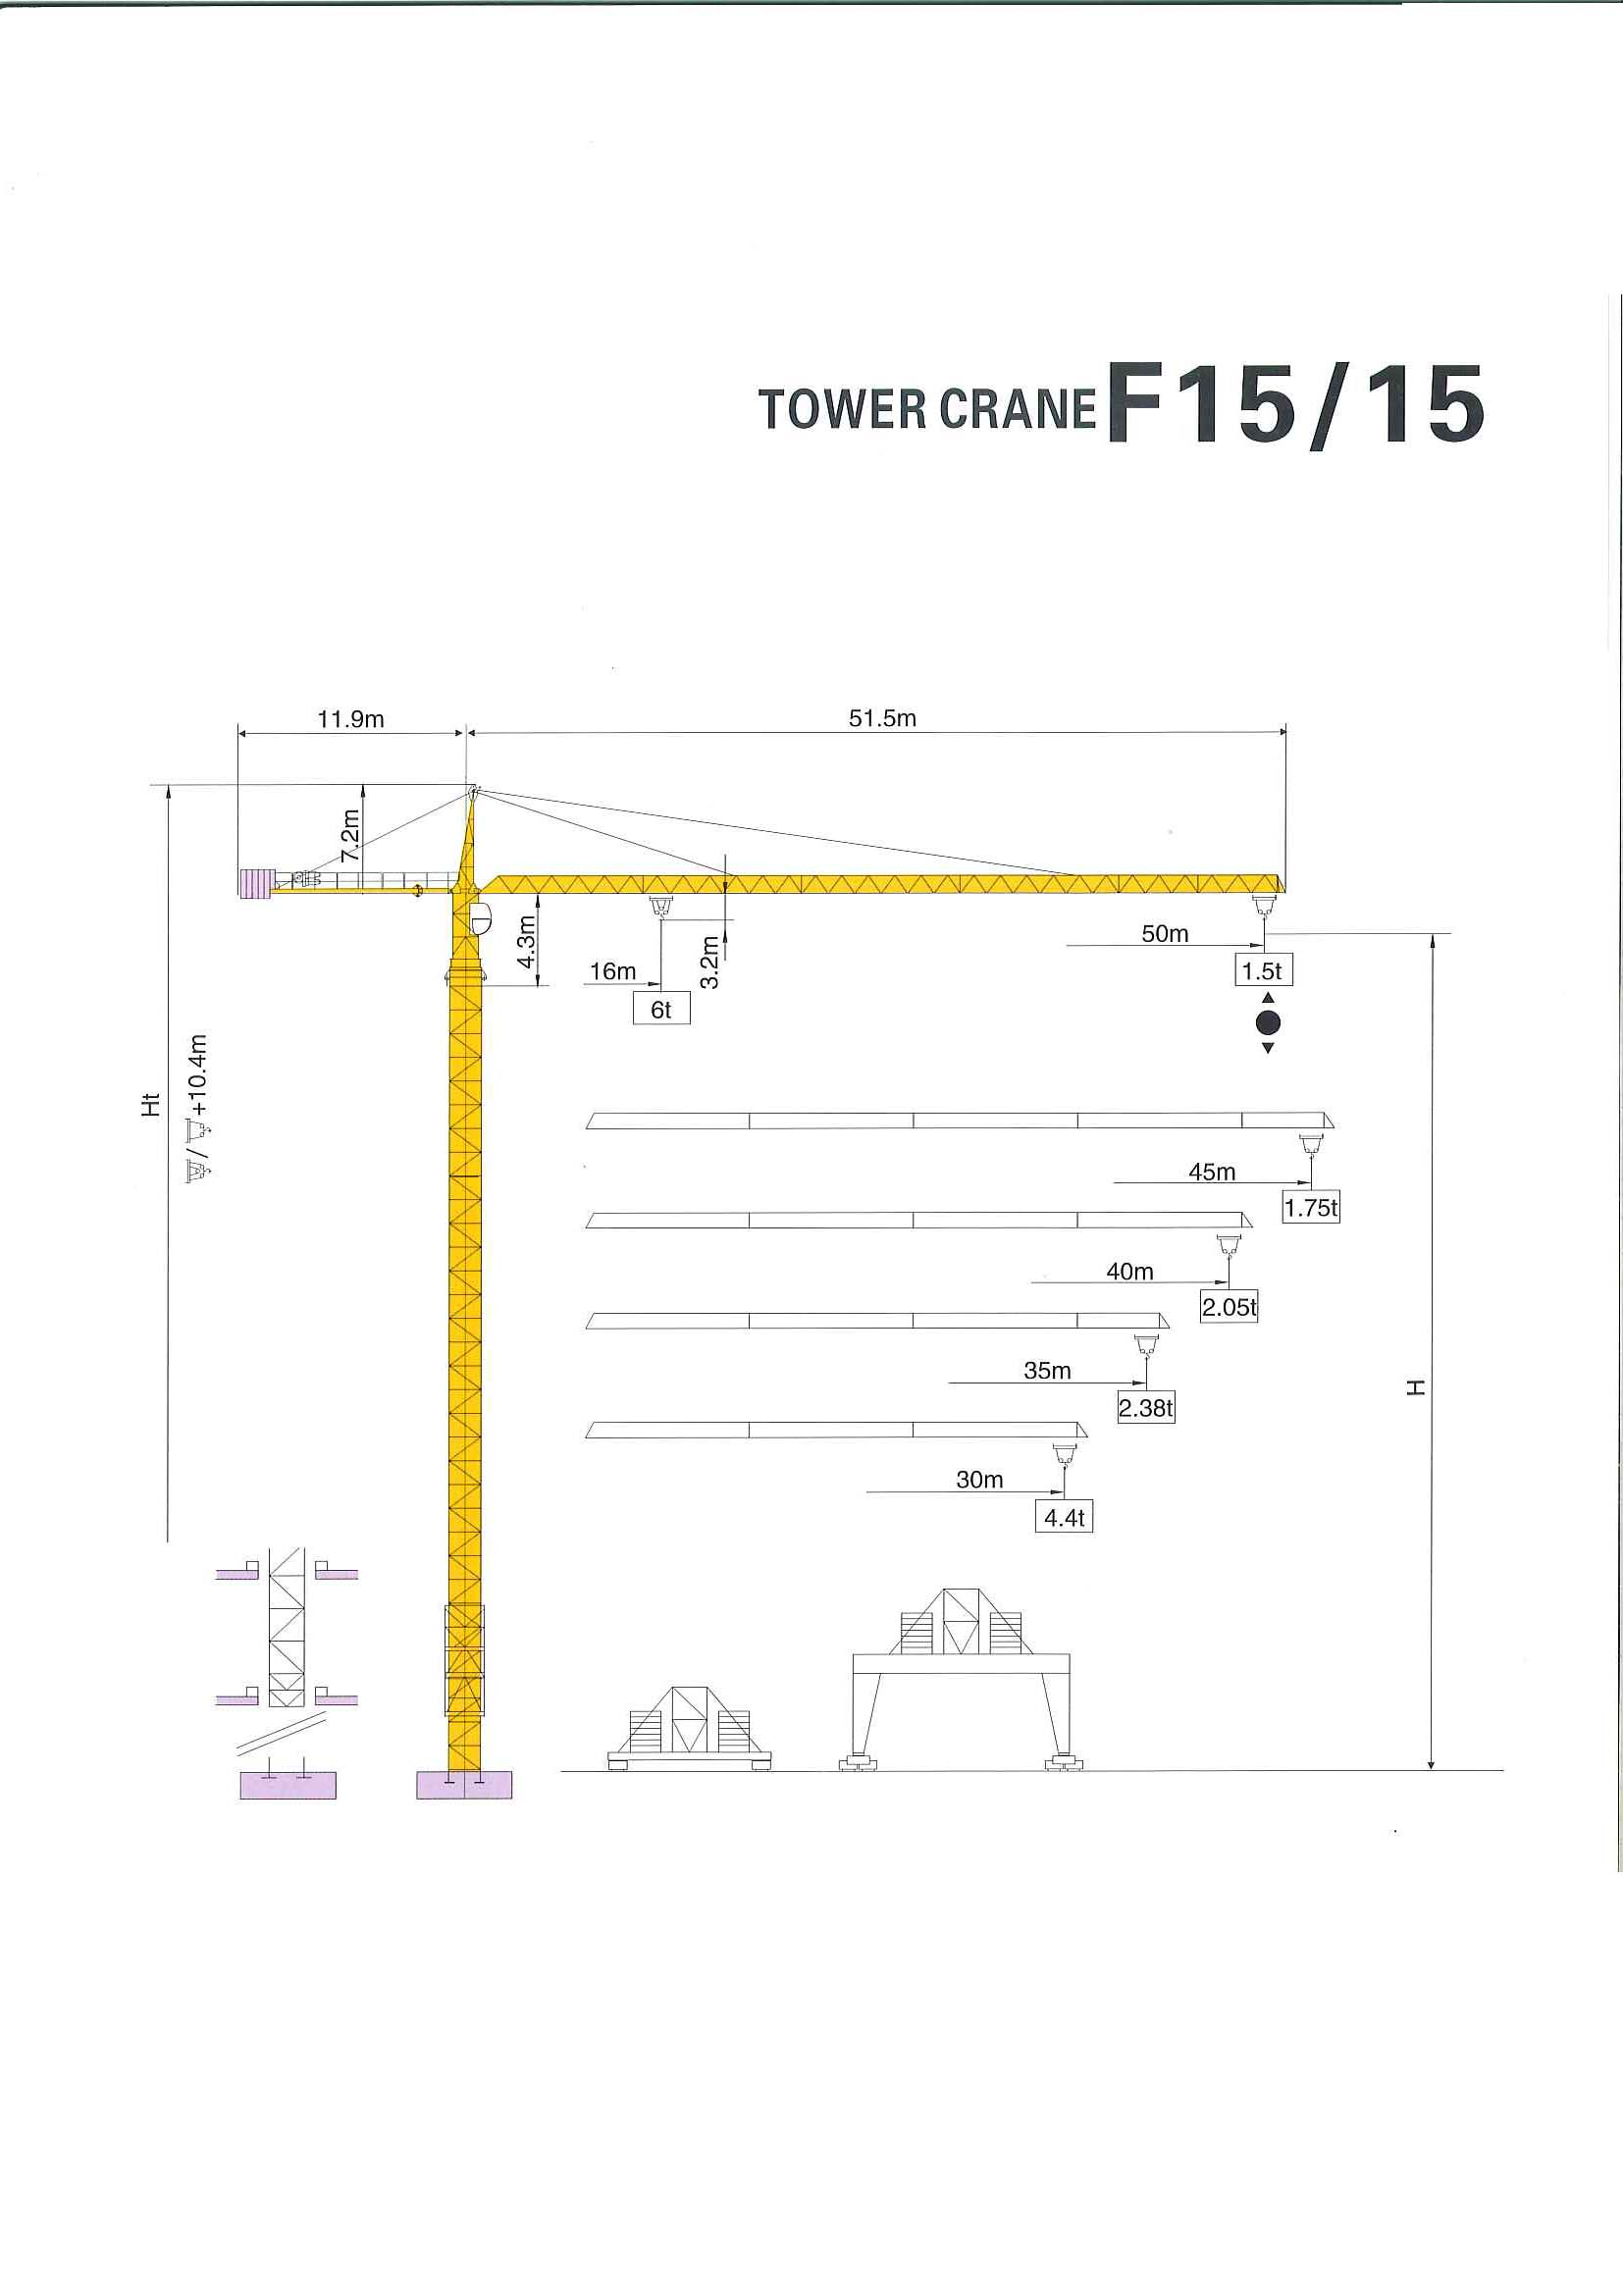 Tower Crane Sizes : Tower crane dimensions images